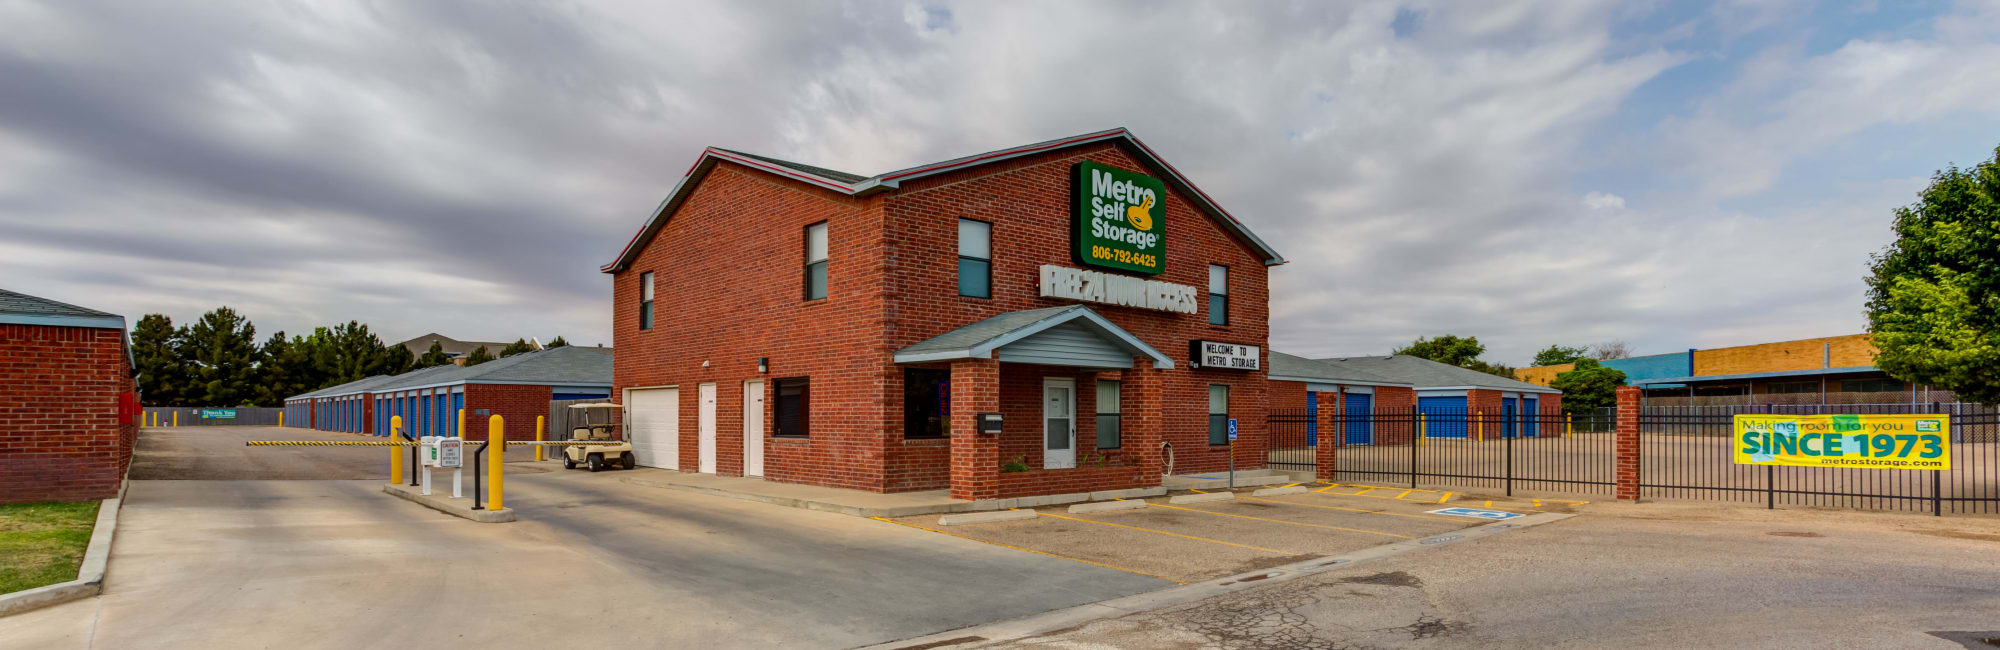 Metro Self Storage in Lubbock, TX